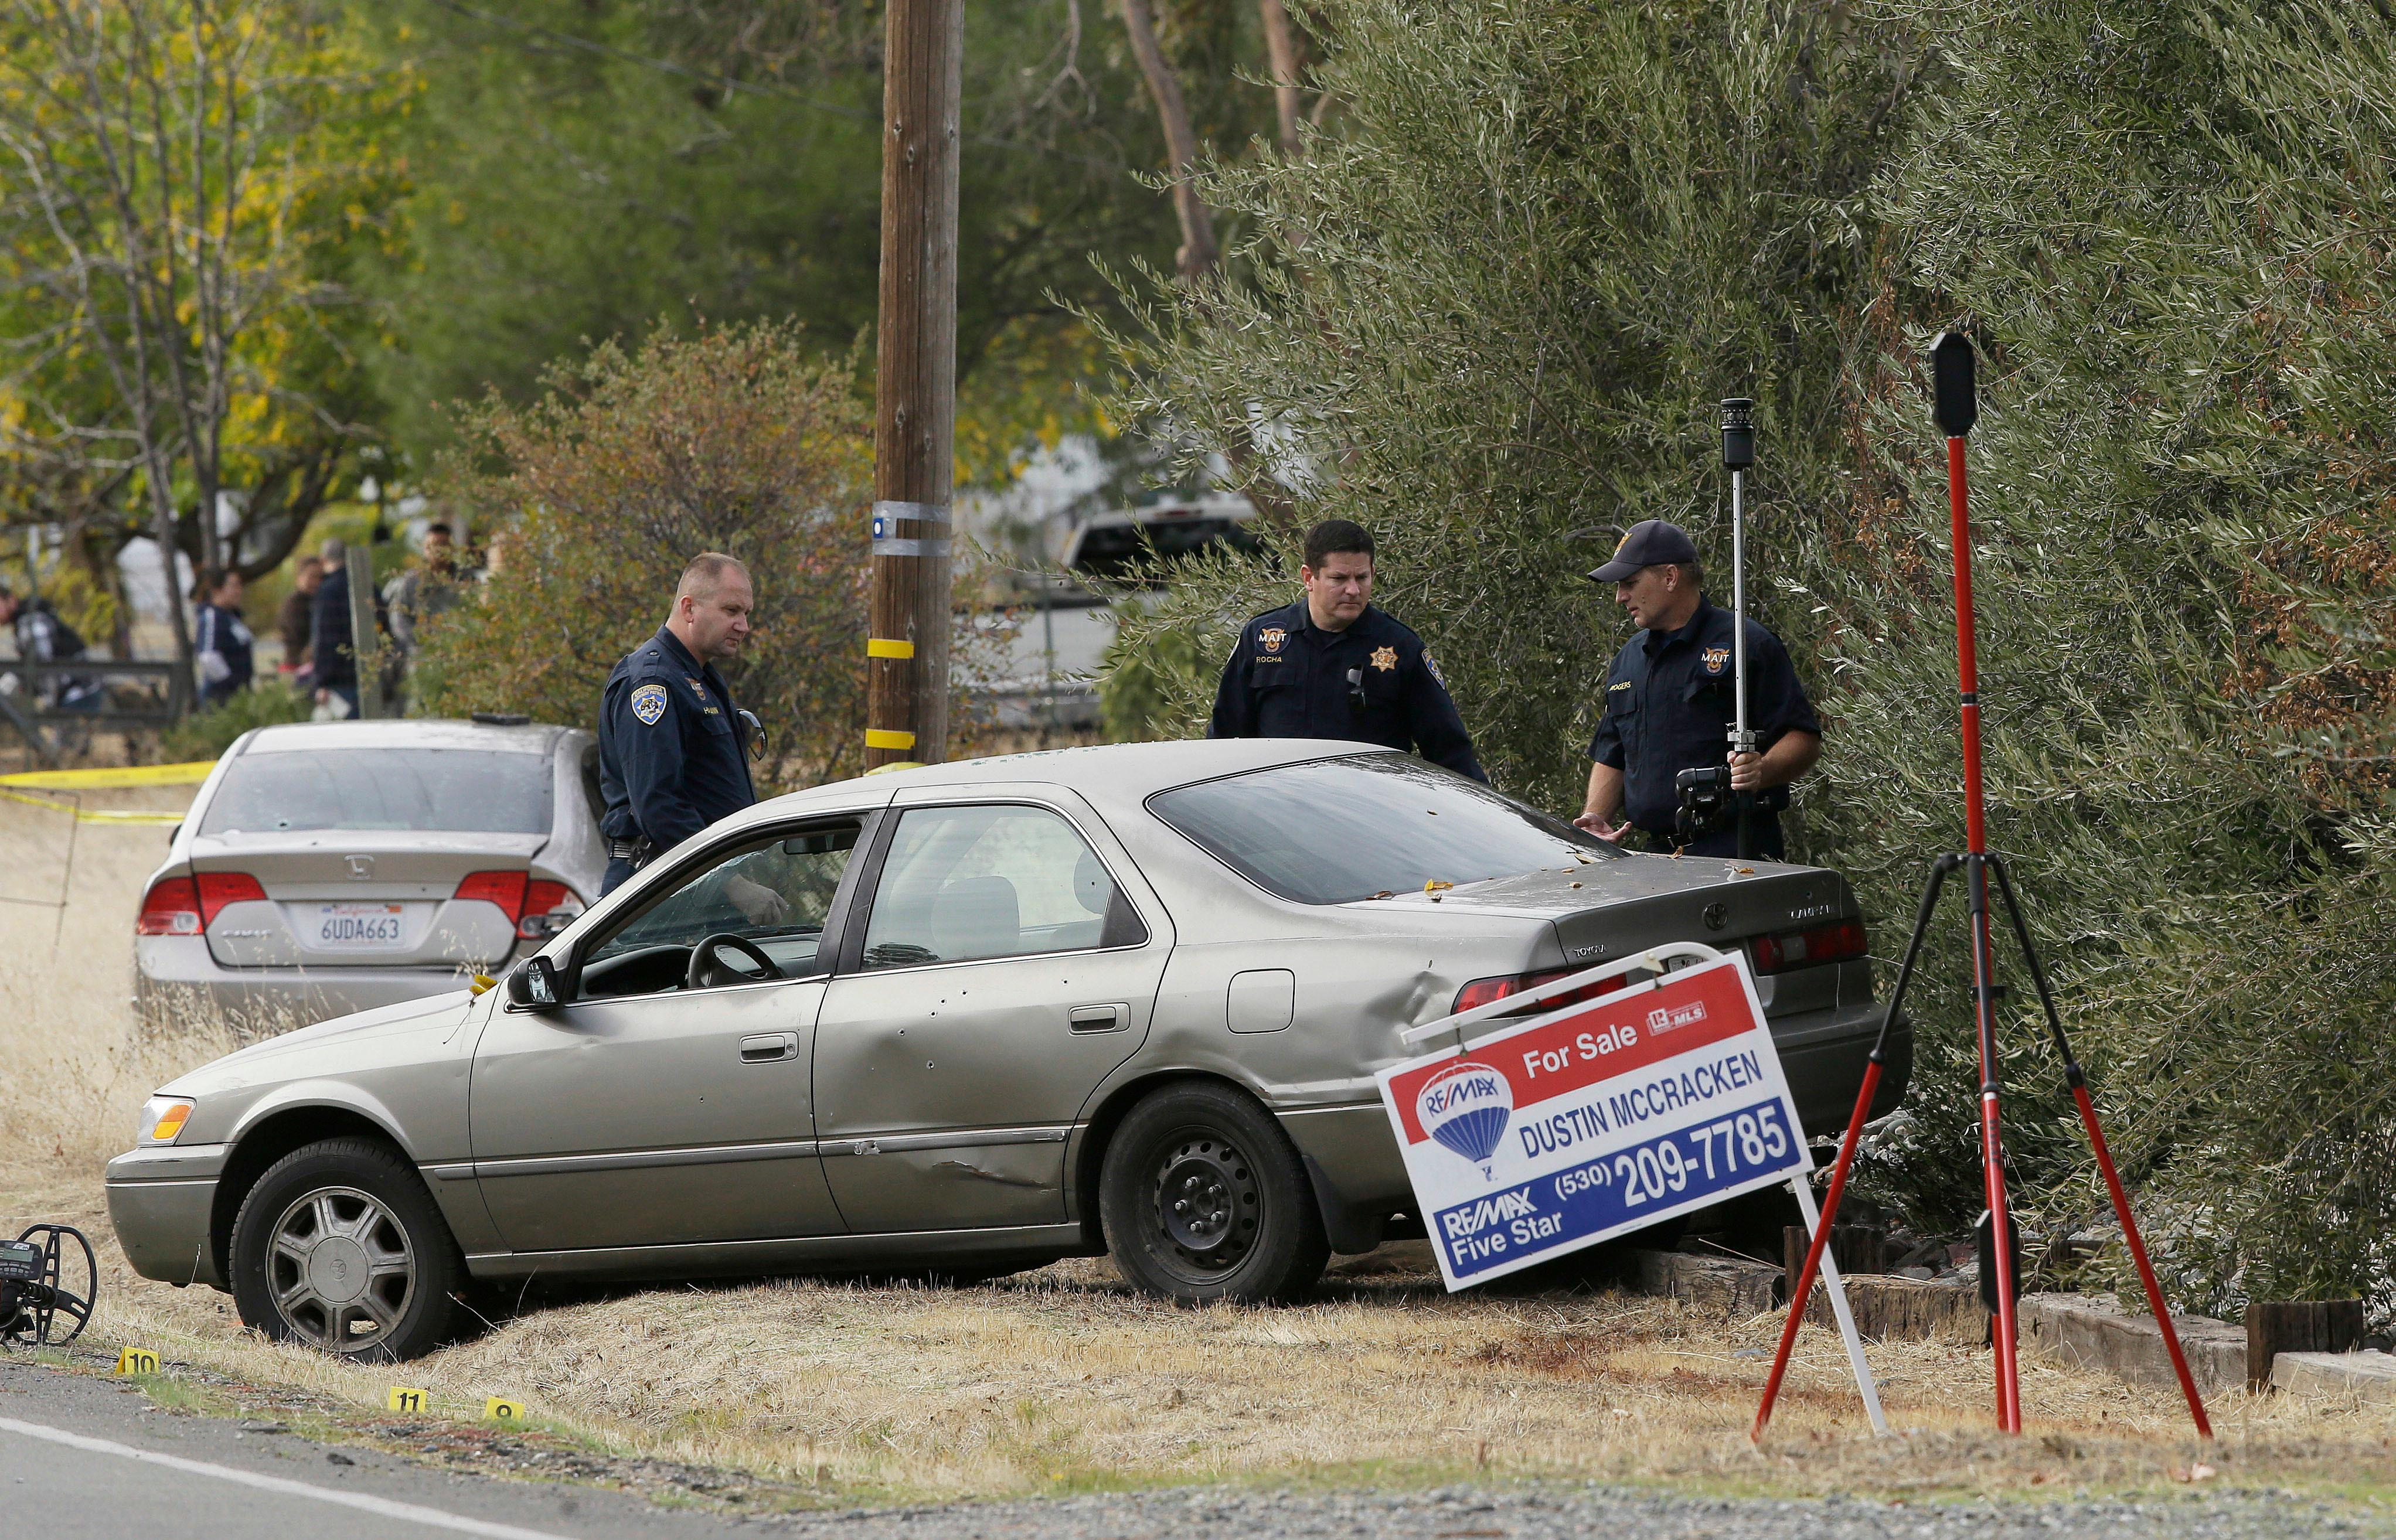 California Highway Patrol Officers inspect one of the vehicles involved when a gunman went on a shooting rampage at the Rancho Tehama Reserve, near Corning, Calif., Tuesday, Nov. 14, 2017. Law enforcement says that five people, including the shooter were killed, and several people were injured during the shooting spree that occurred at multiple locations. (AP Photo/Rich Pedroncelli)